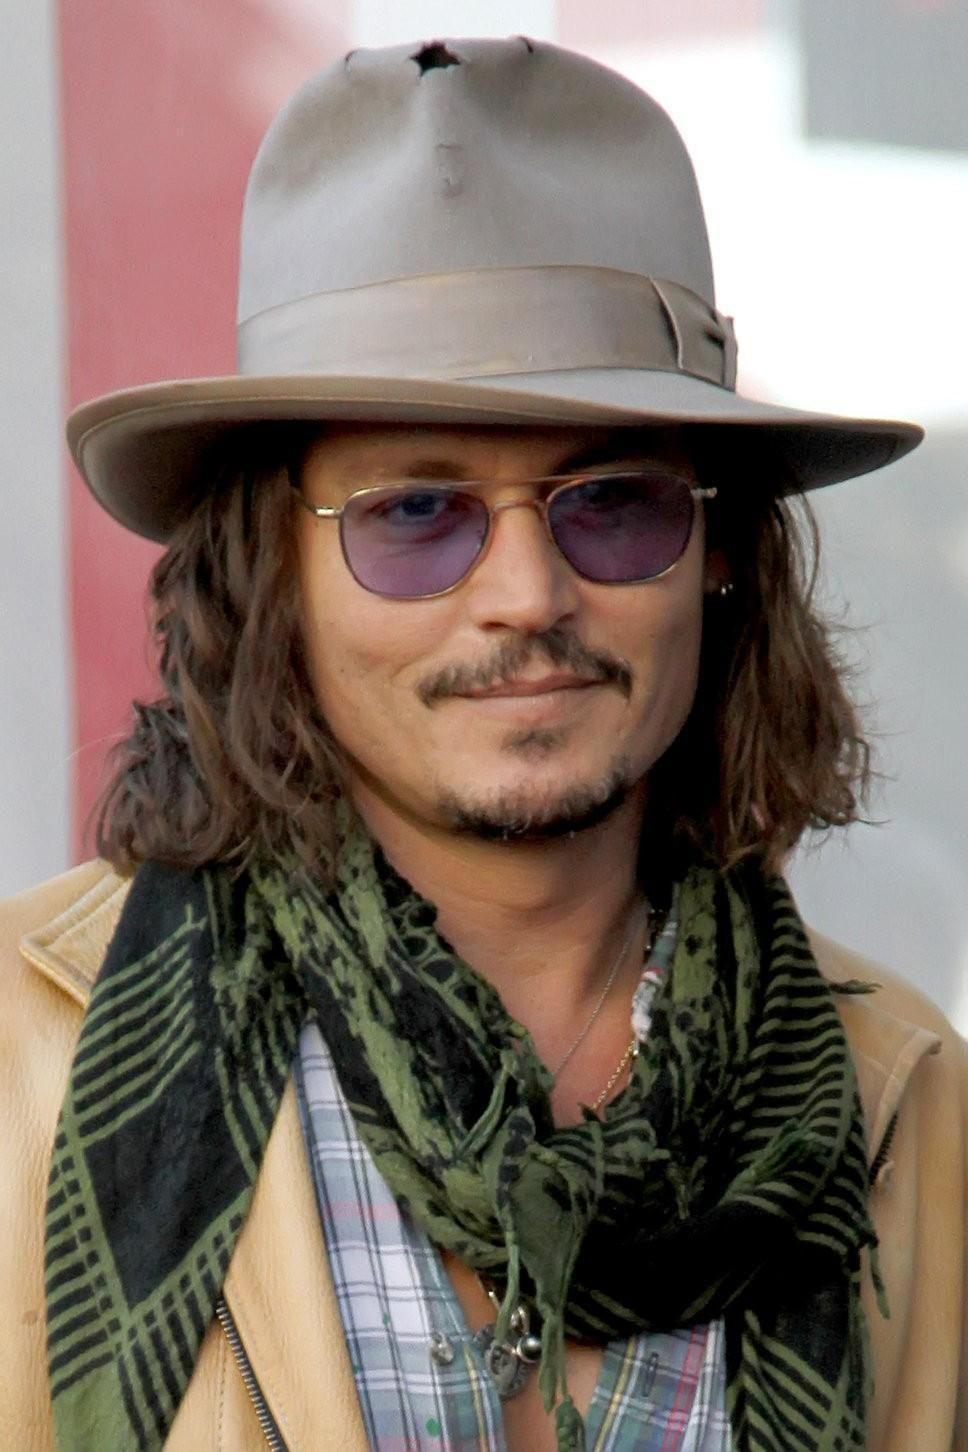 Johnny Depp Inspired Grunge / Tactical Fashion Scarf